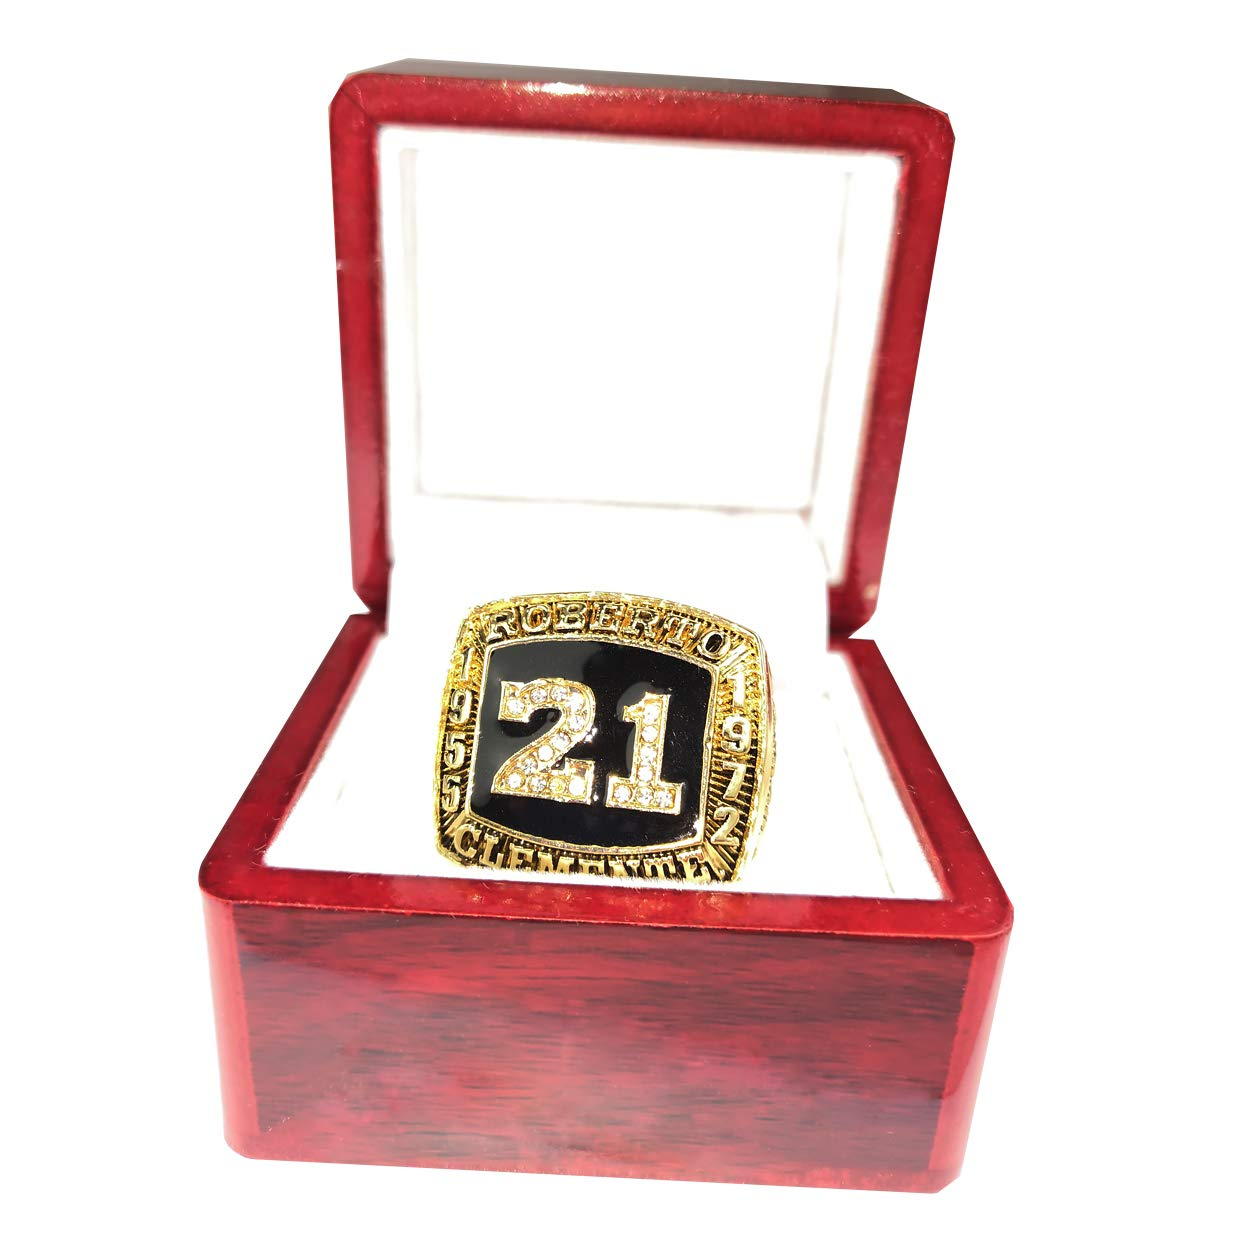 RongJ- store Robert Clemente 1955 to 1972 Basketball Championship Ring Cherrywood Display case